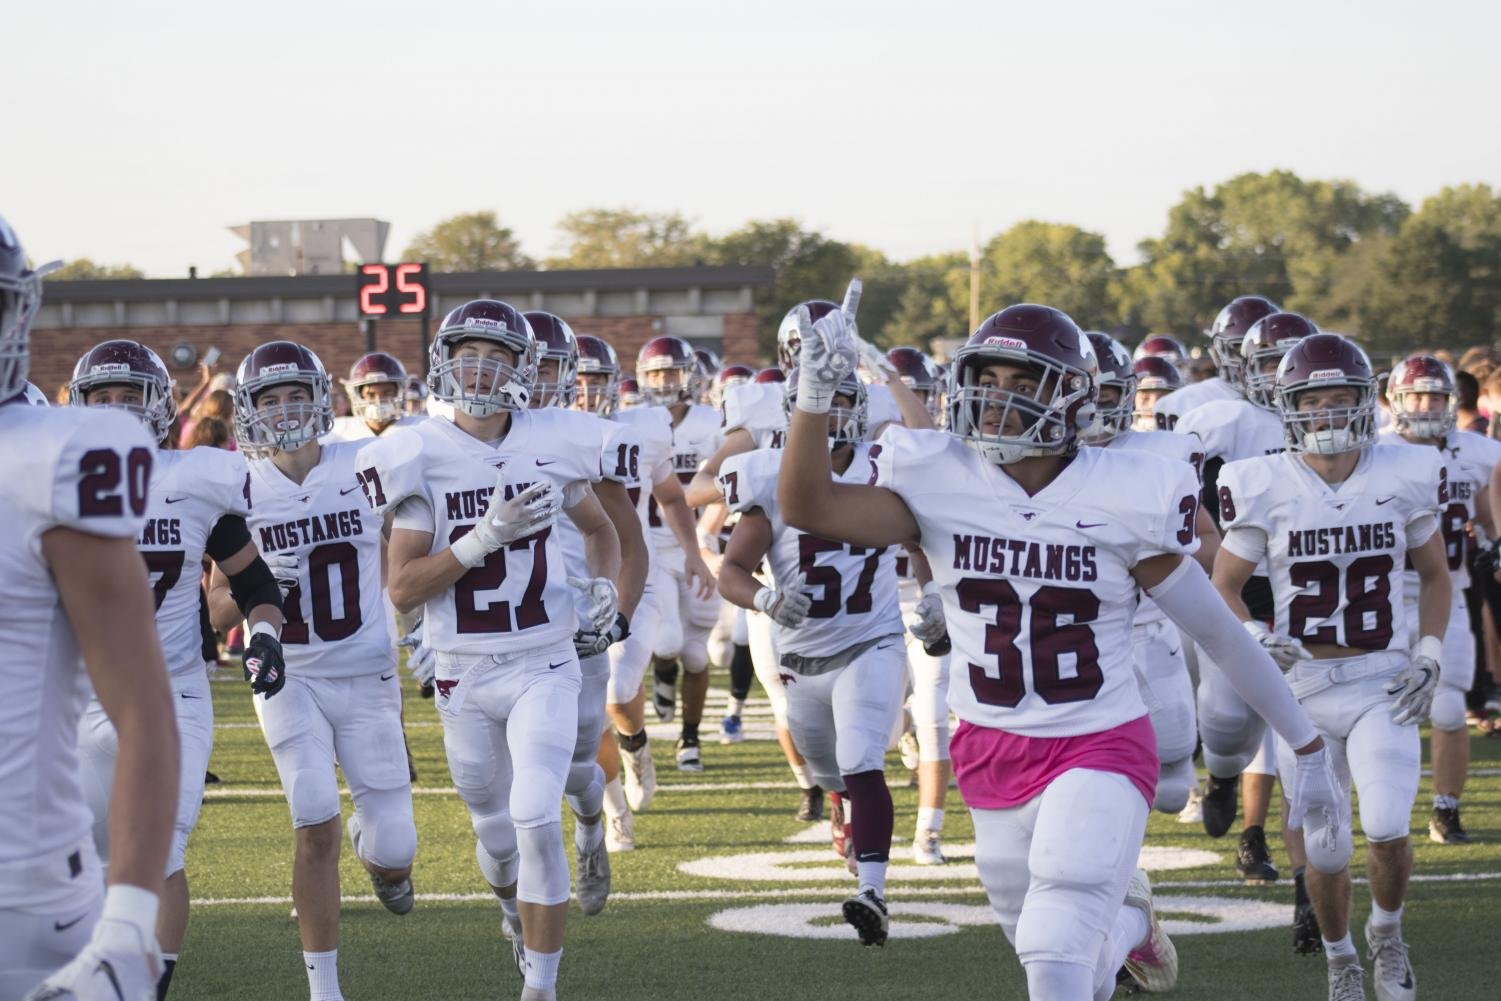 Mustangs running onto the field. Photo by Gavin Sutton